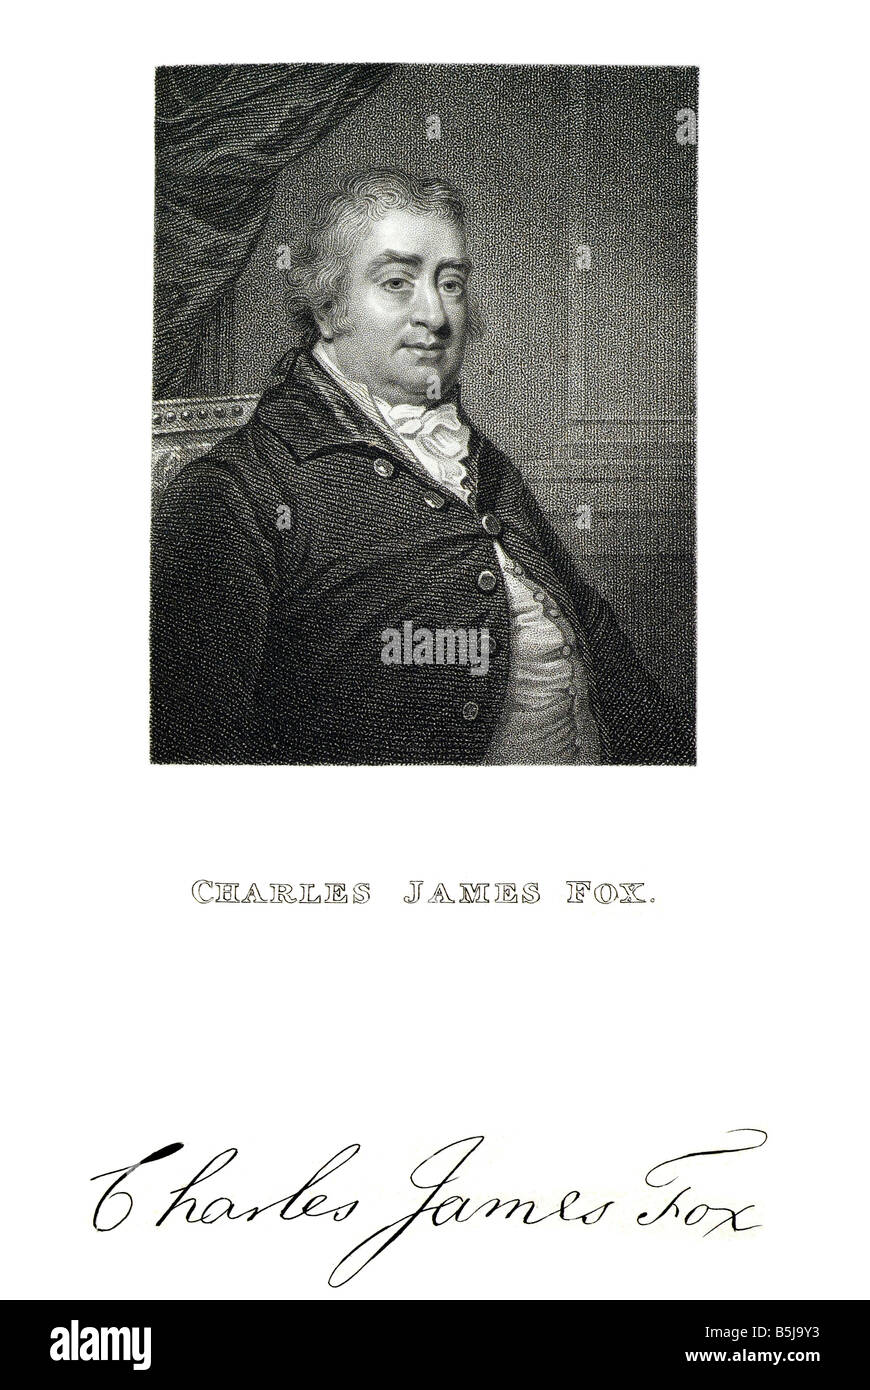 charles james fox The Right Honourable Charles James Fox (24 January 1749 – 13 September 1806) was a prominent British - Stock Image